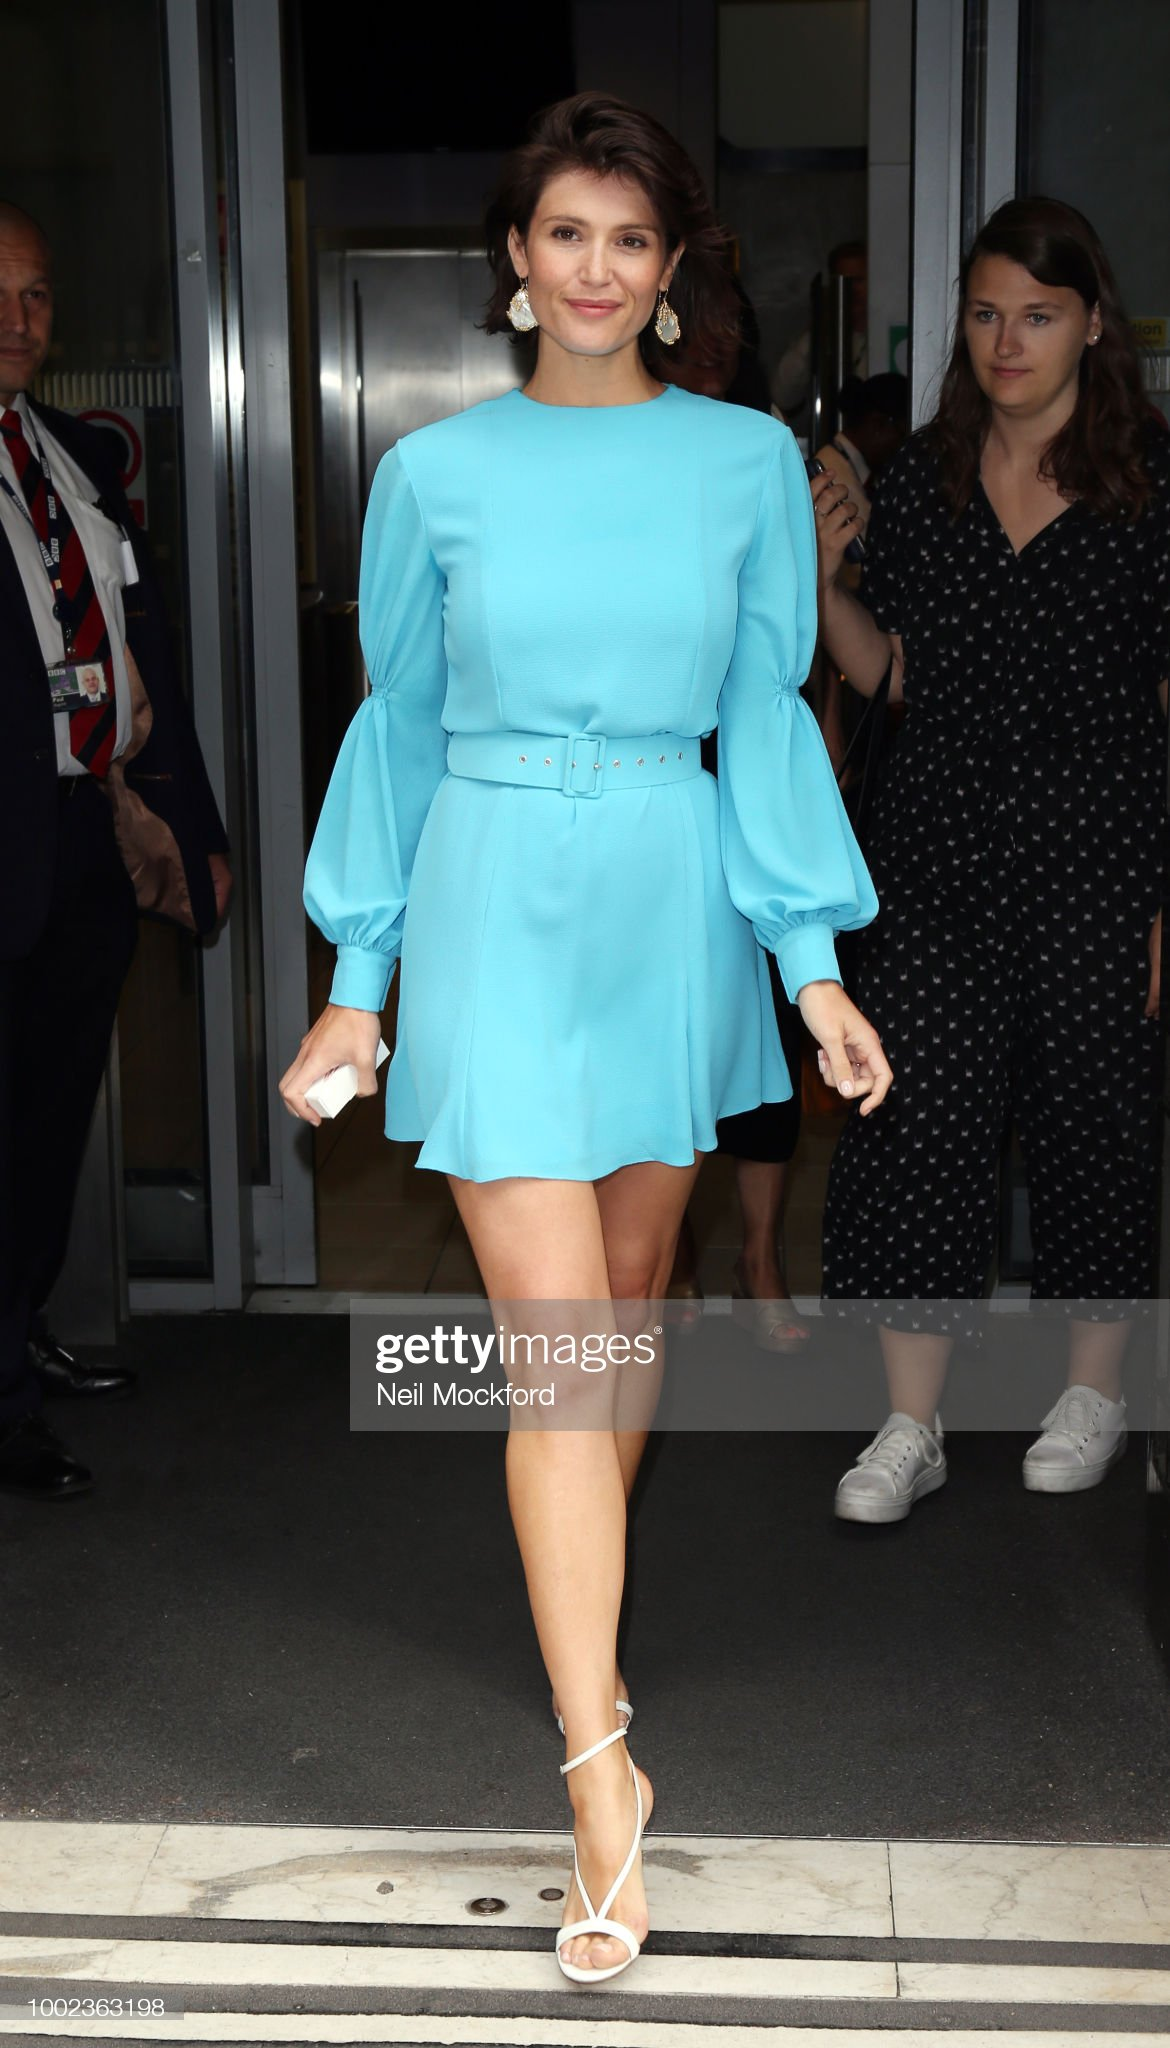 gemma-arterton-seen-at-bbc-radio-2-after-appearing-on-the-chris-evans-picture-id1002363198